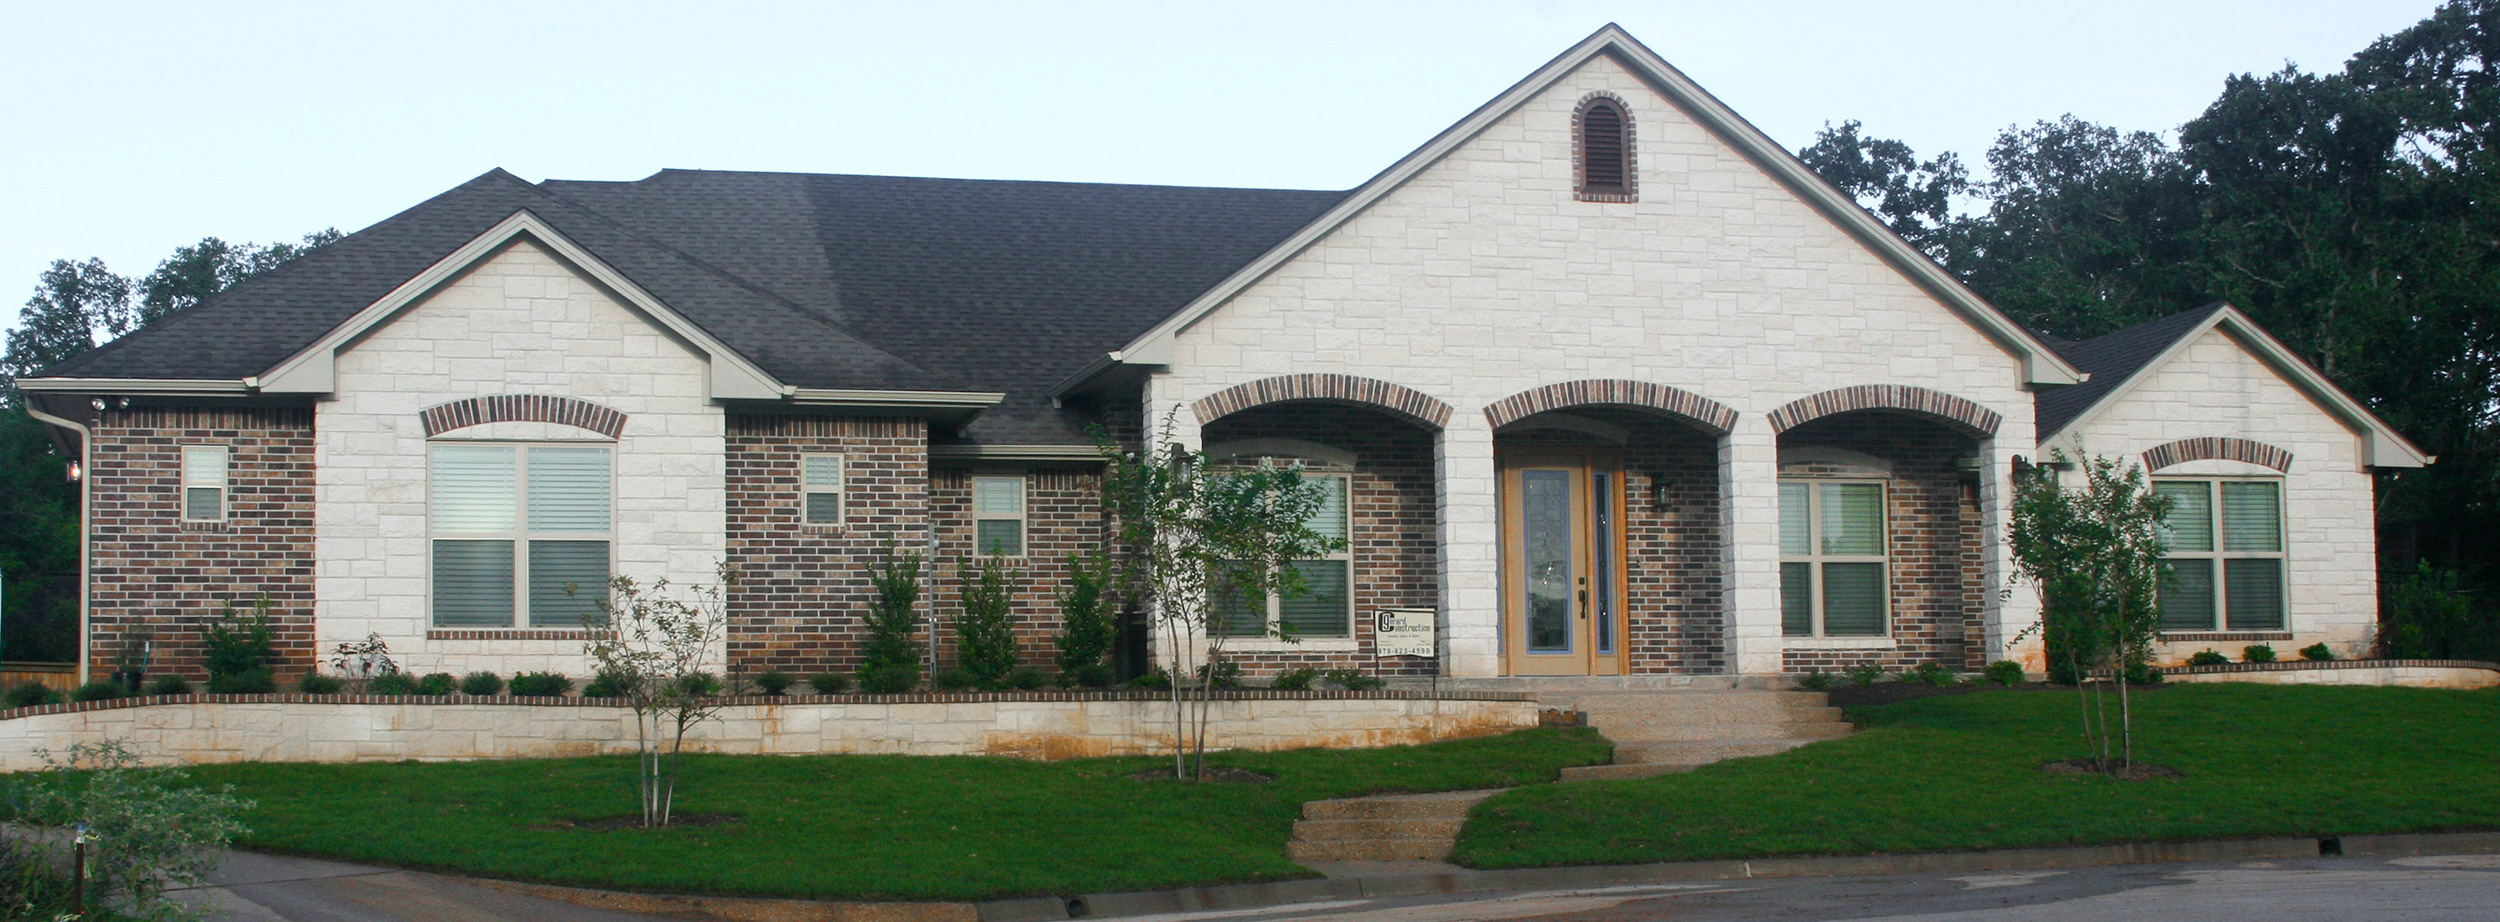 Gerard Construction - Custom Homebuilder Bryan/College Station